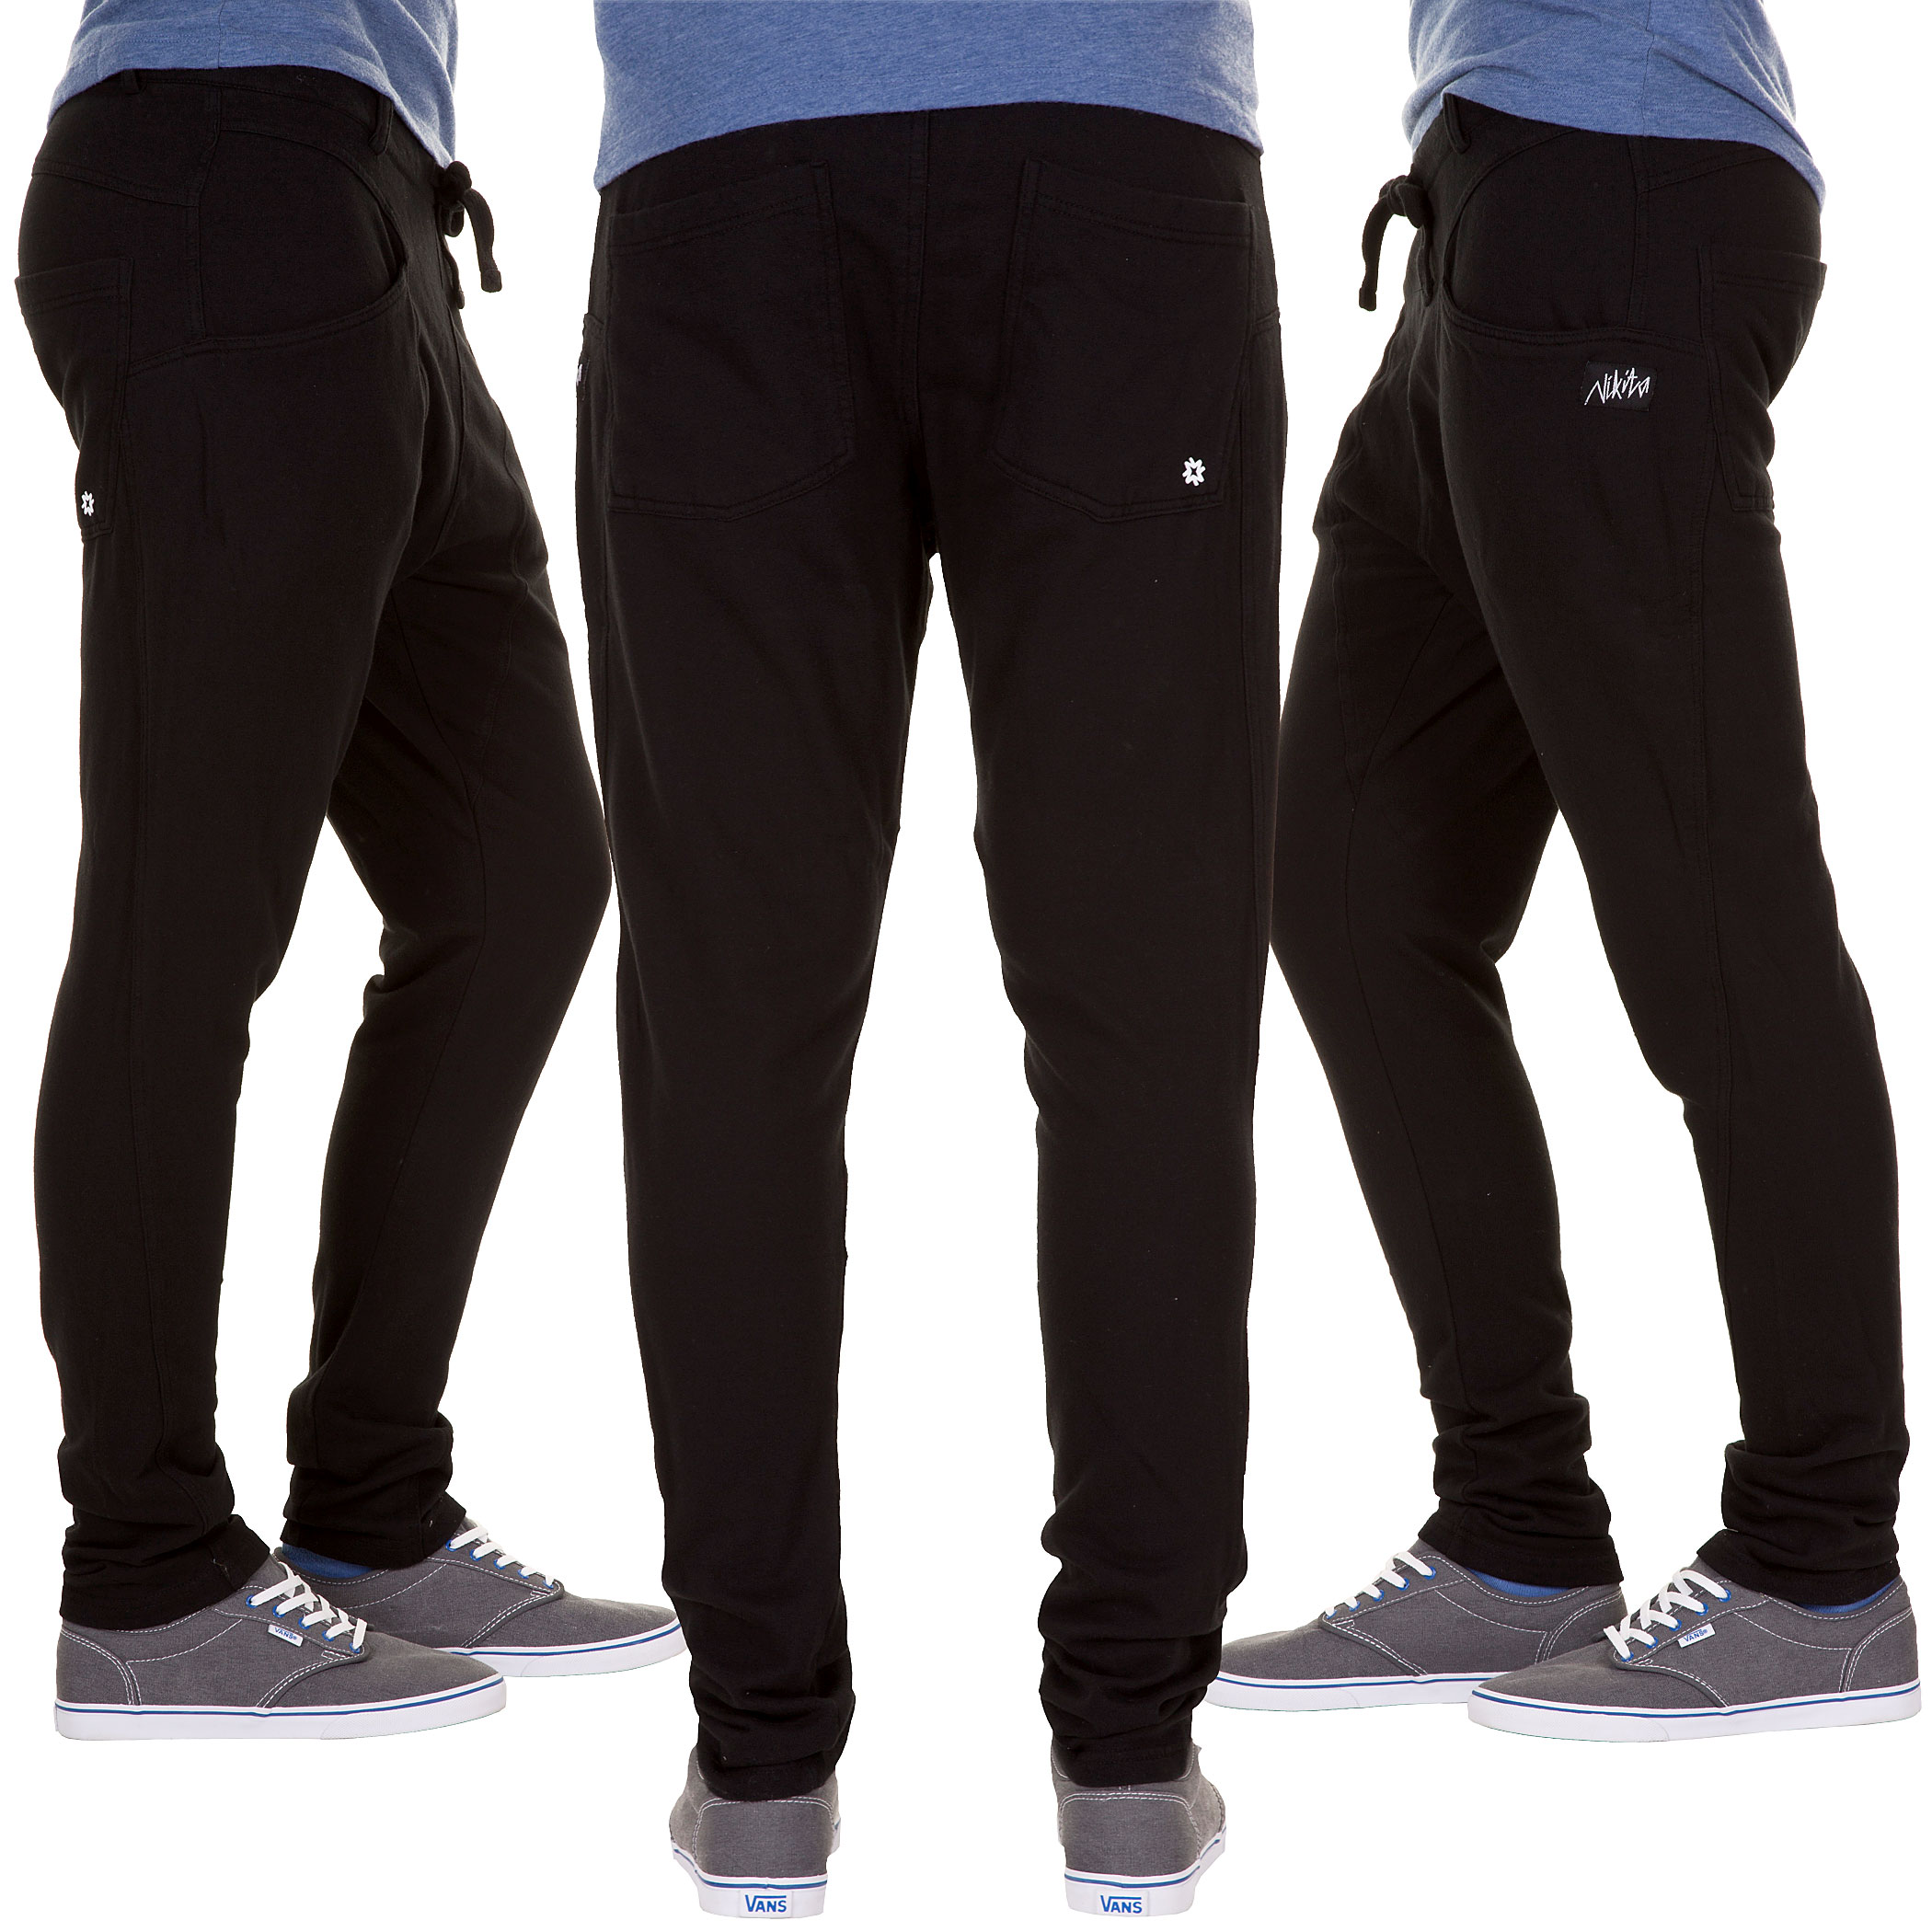 Lastest  Sport Jogging Pants  GunmetalBlack In Gray GunmetalBlack  Lyst